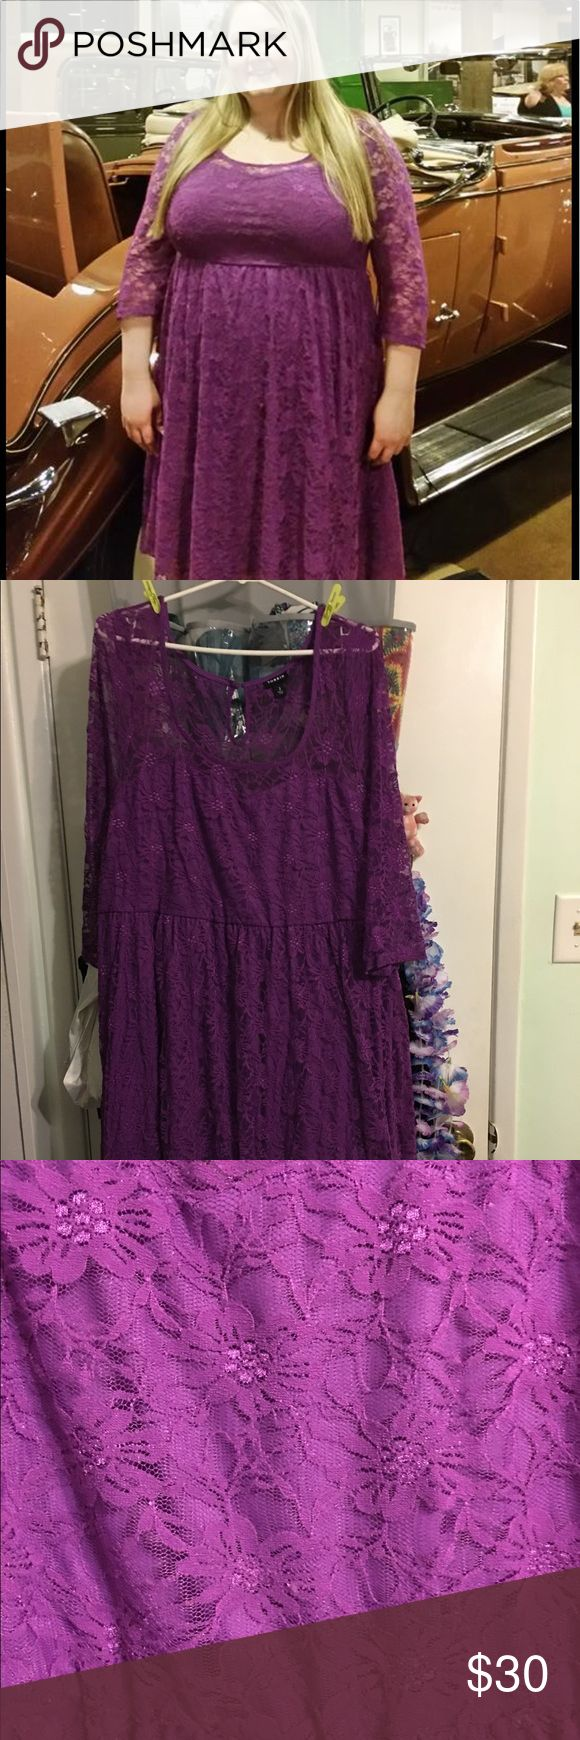 2X purple lace dress torrid Beautiful purple lace dress 2X from Torrid Wore once for a Wedding torrid Dresses